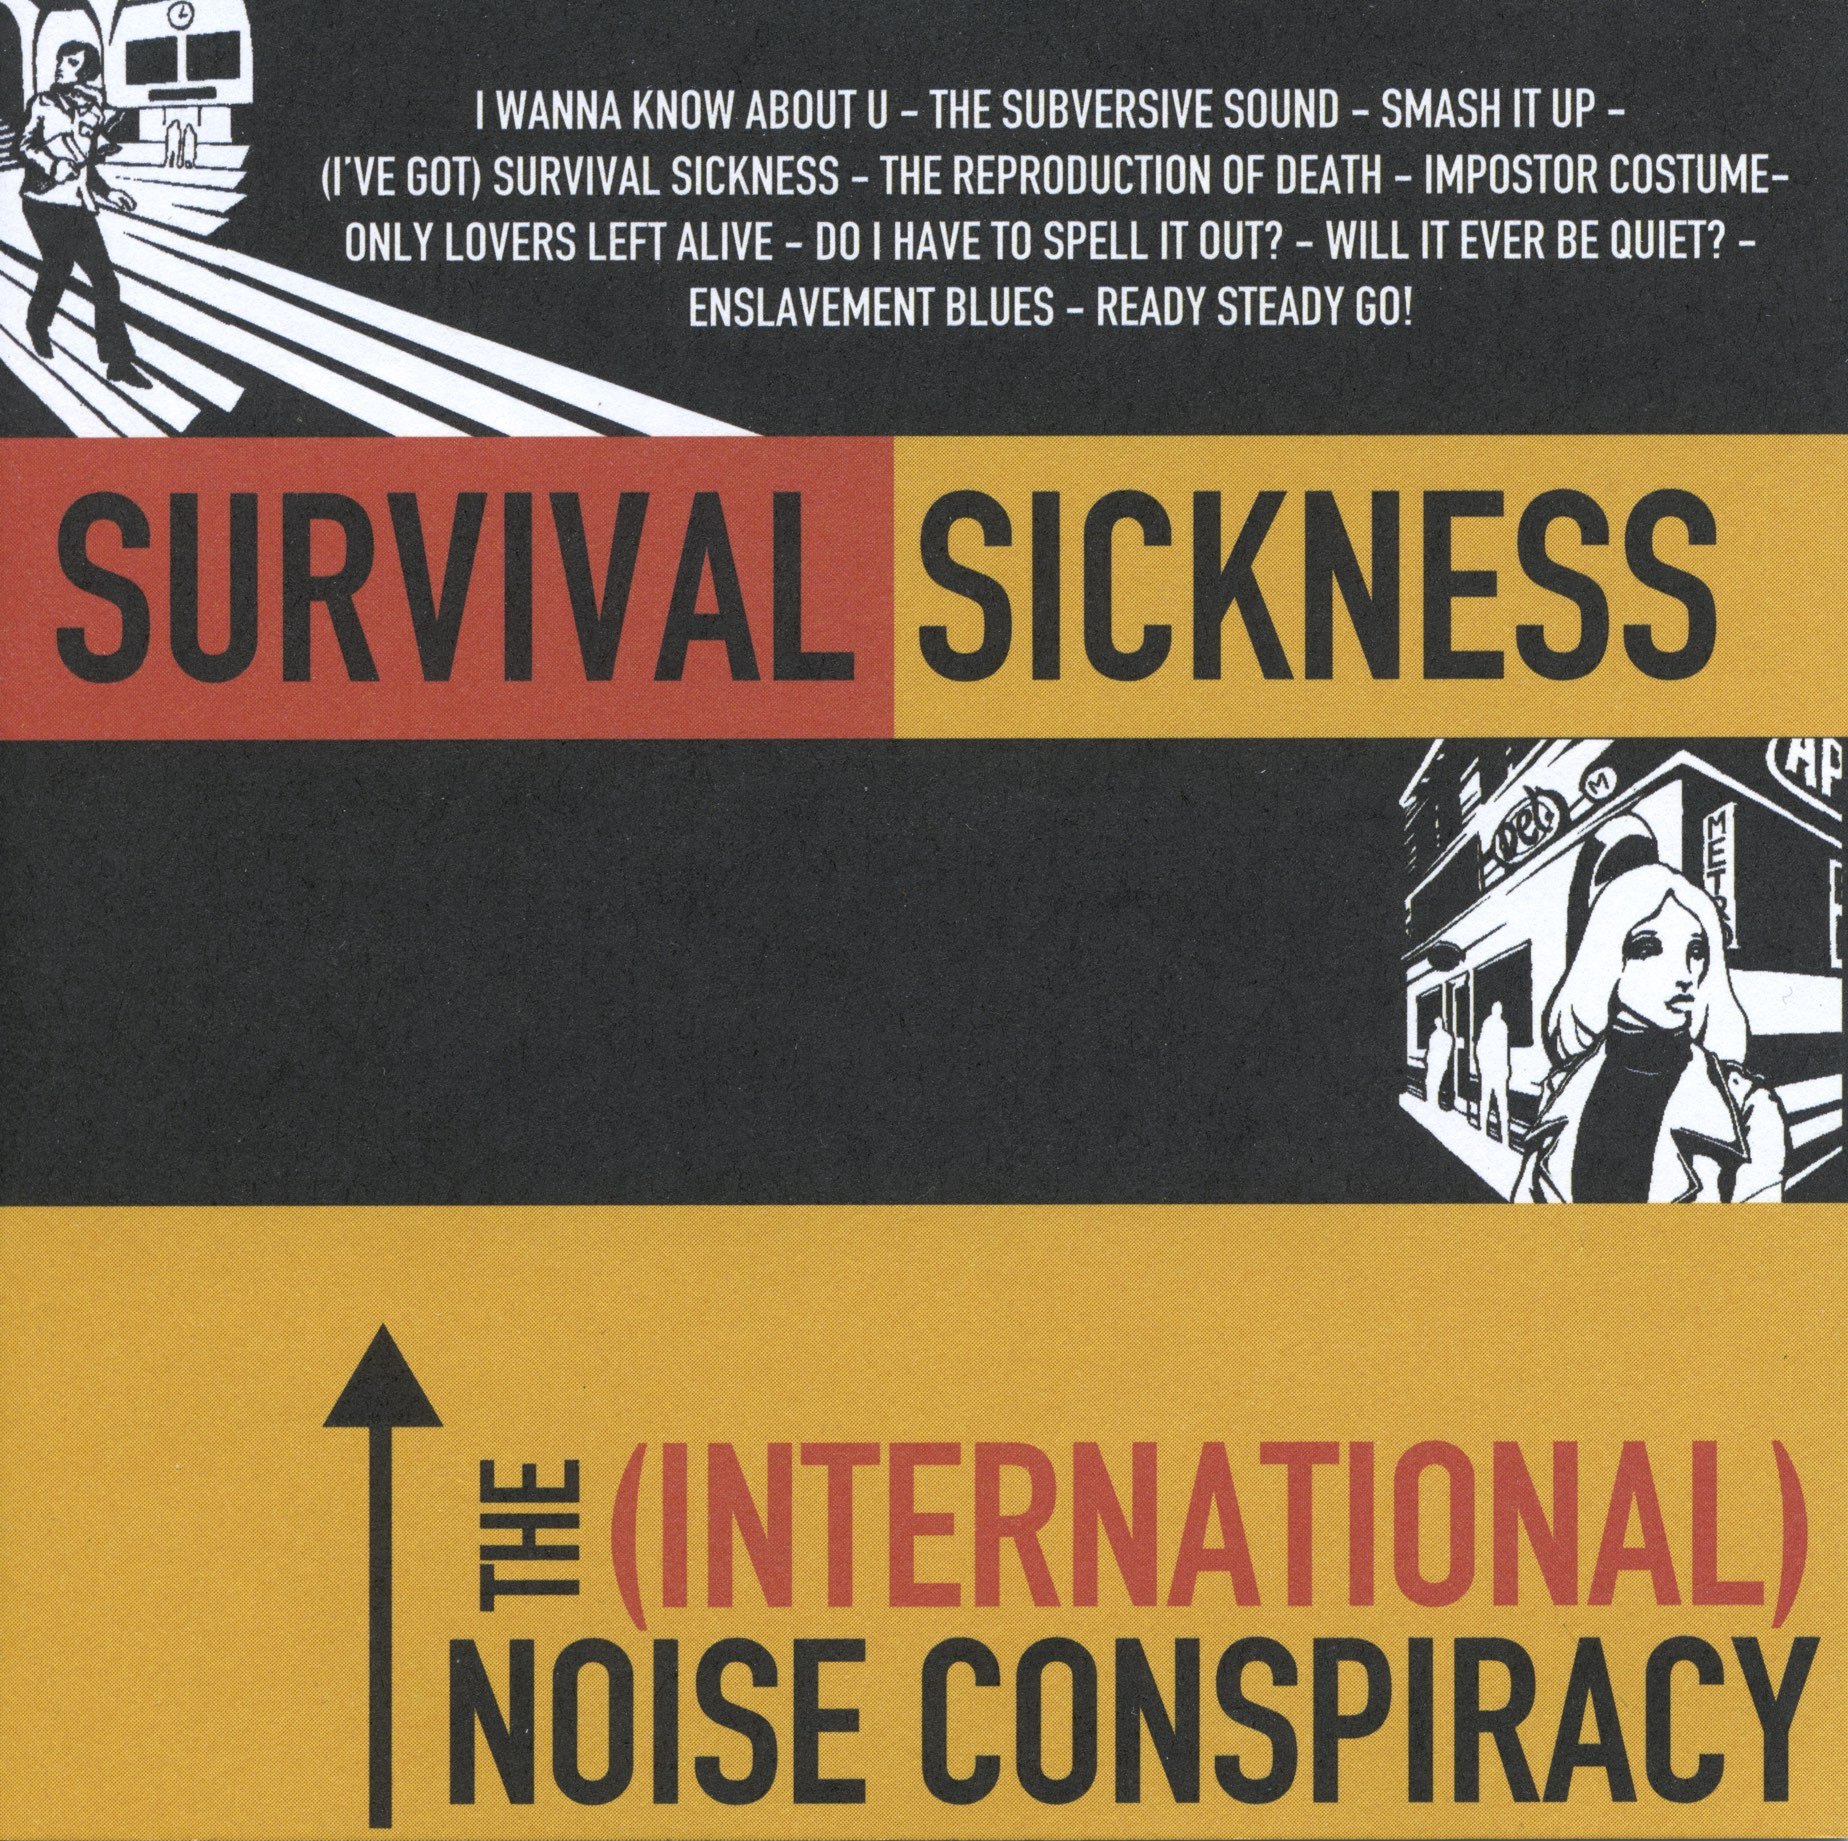 2000 - The (International) Noise Conspiracy